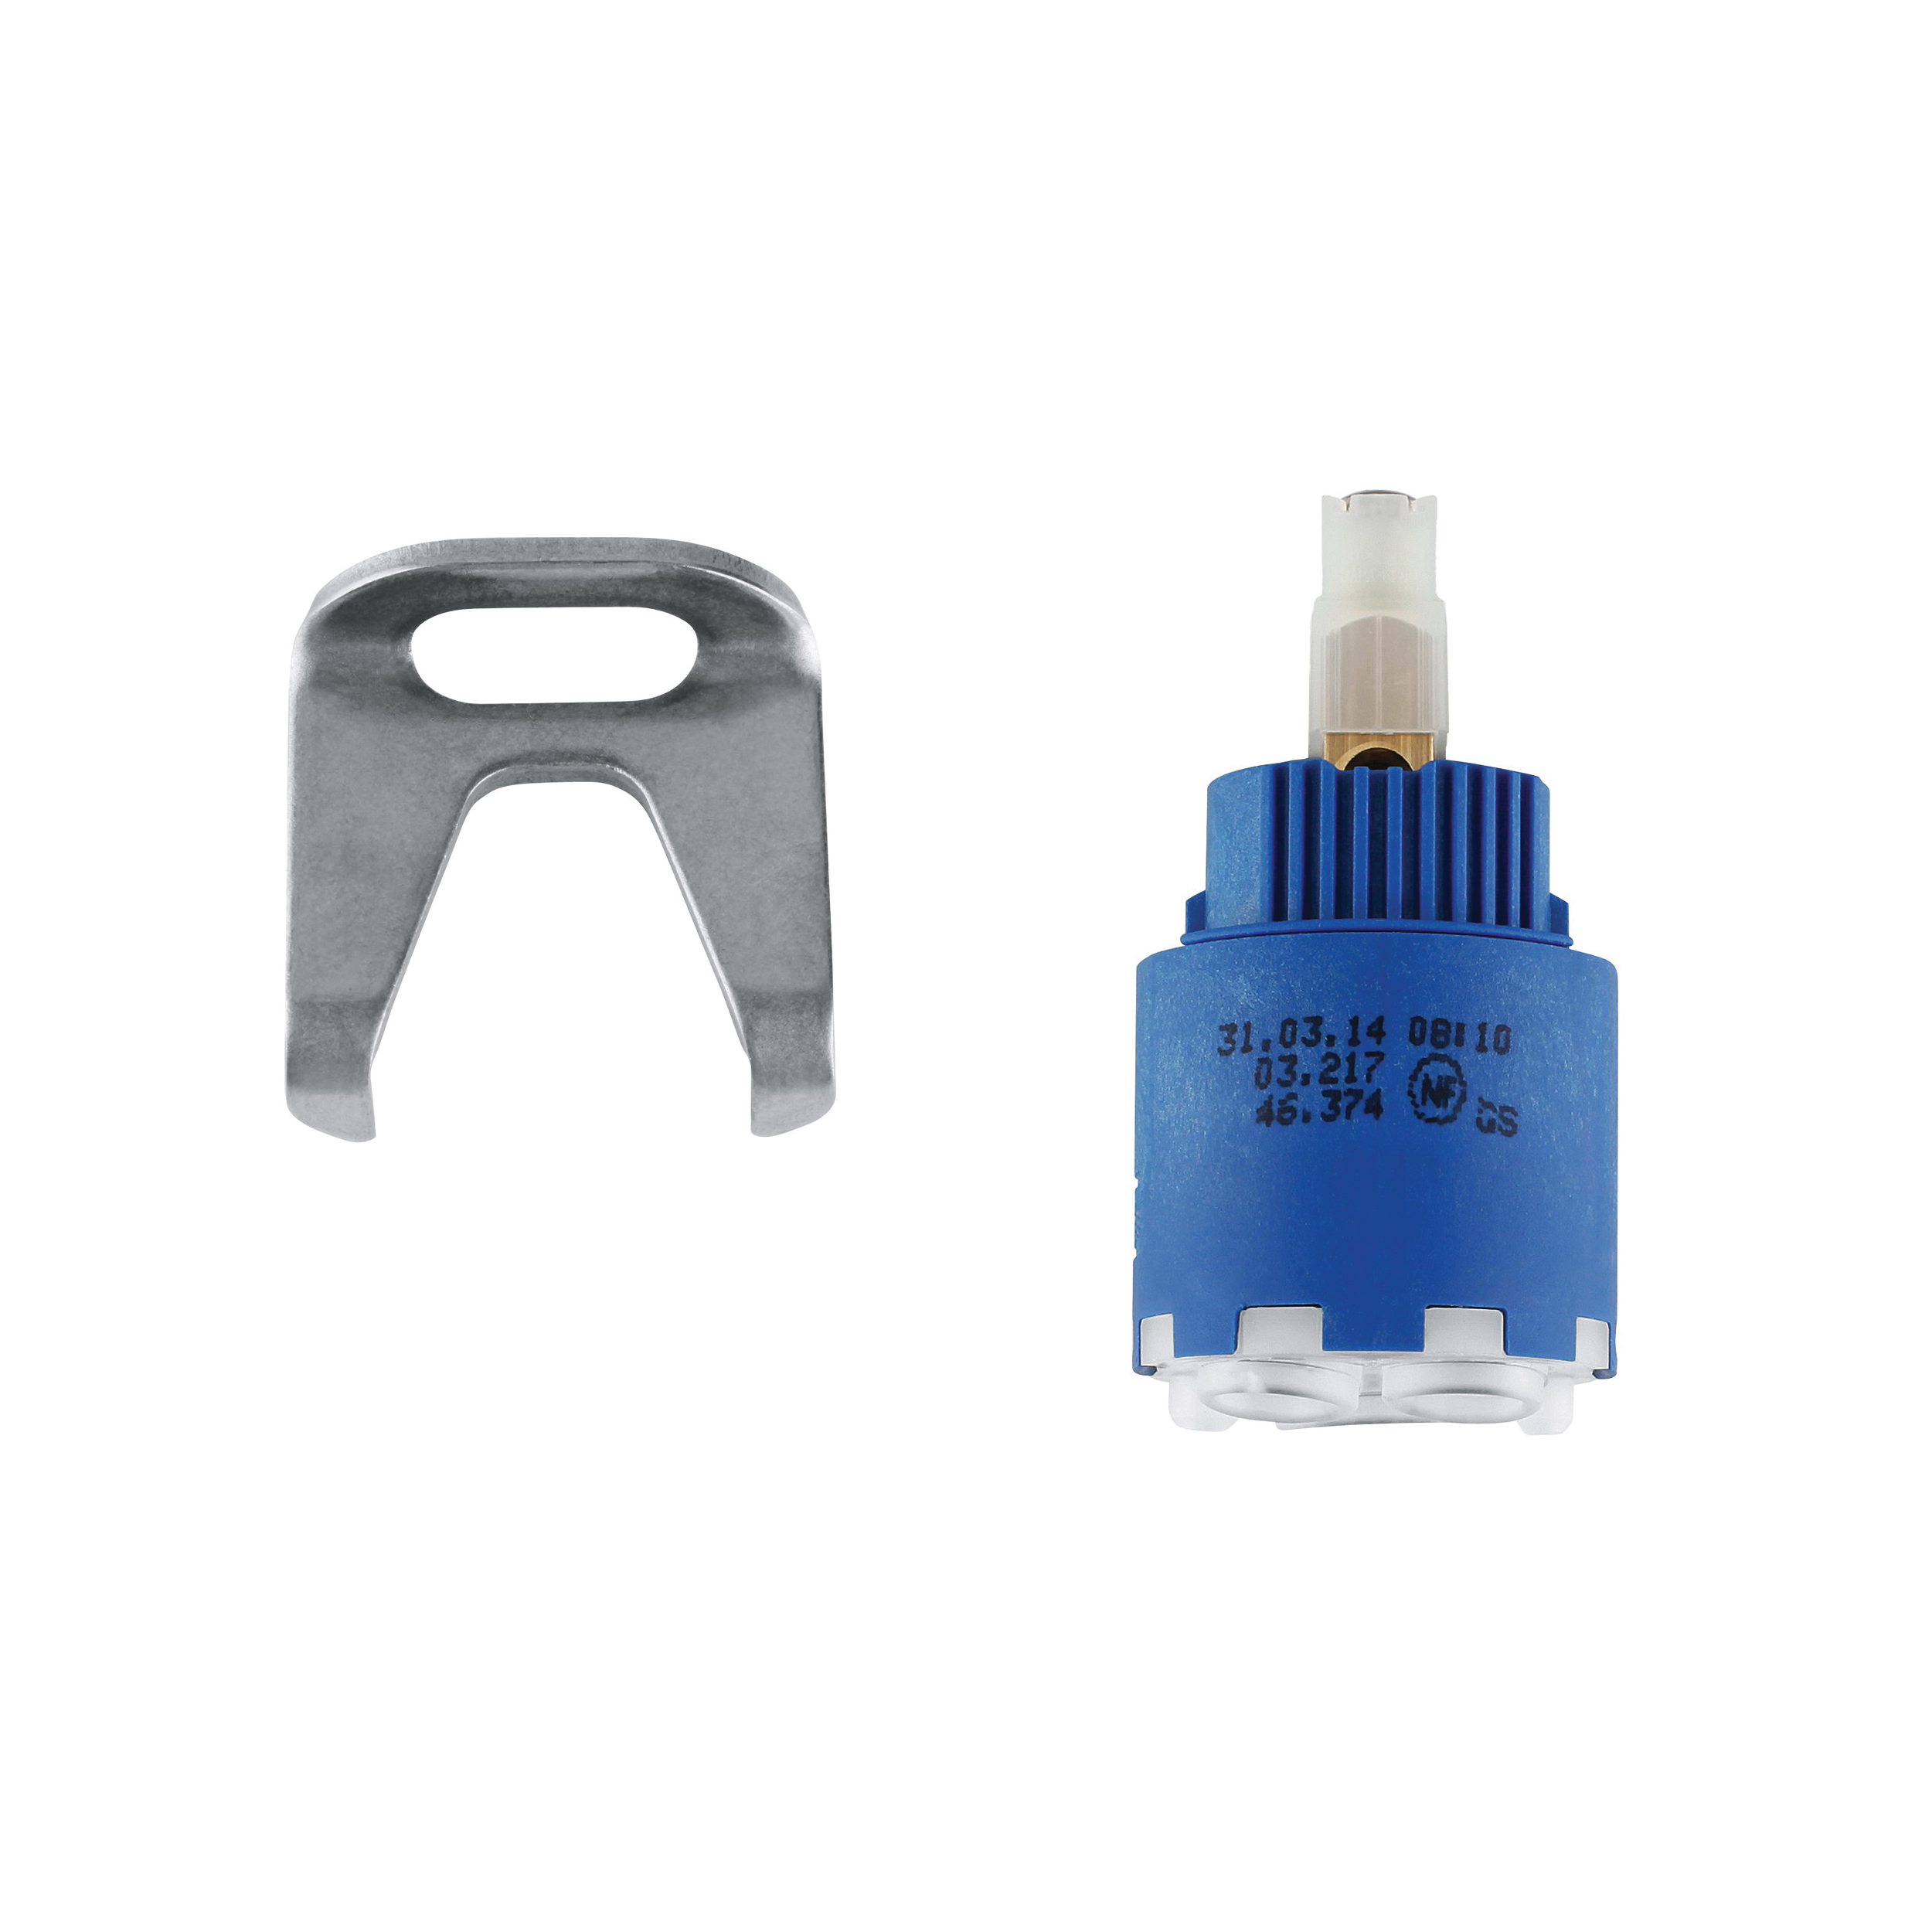 GROHE 46374000 Cartridge With Ceramic Sealing System and Temperature Limiter, For Use With Single Lever Mixer, 35 mm Dia, Import